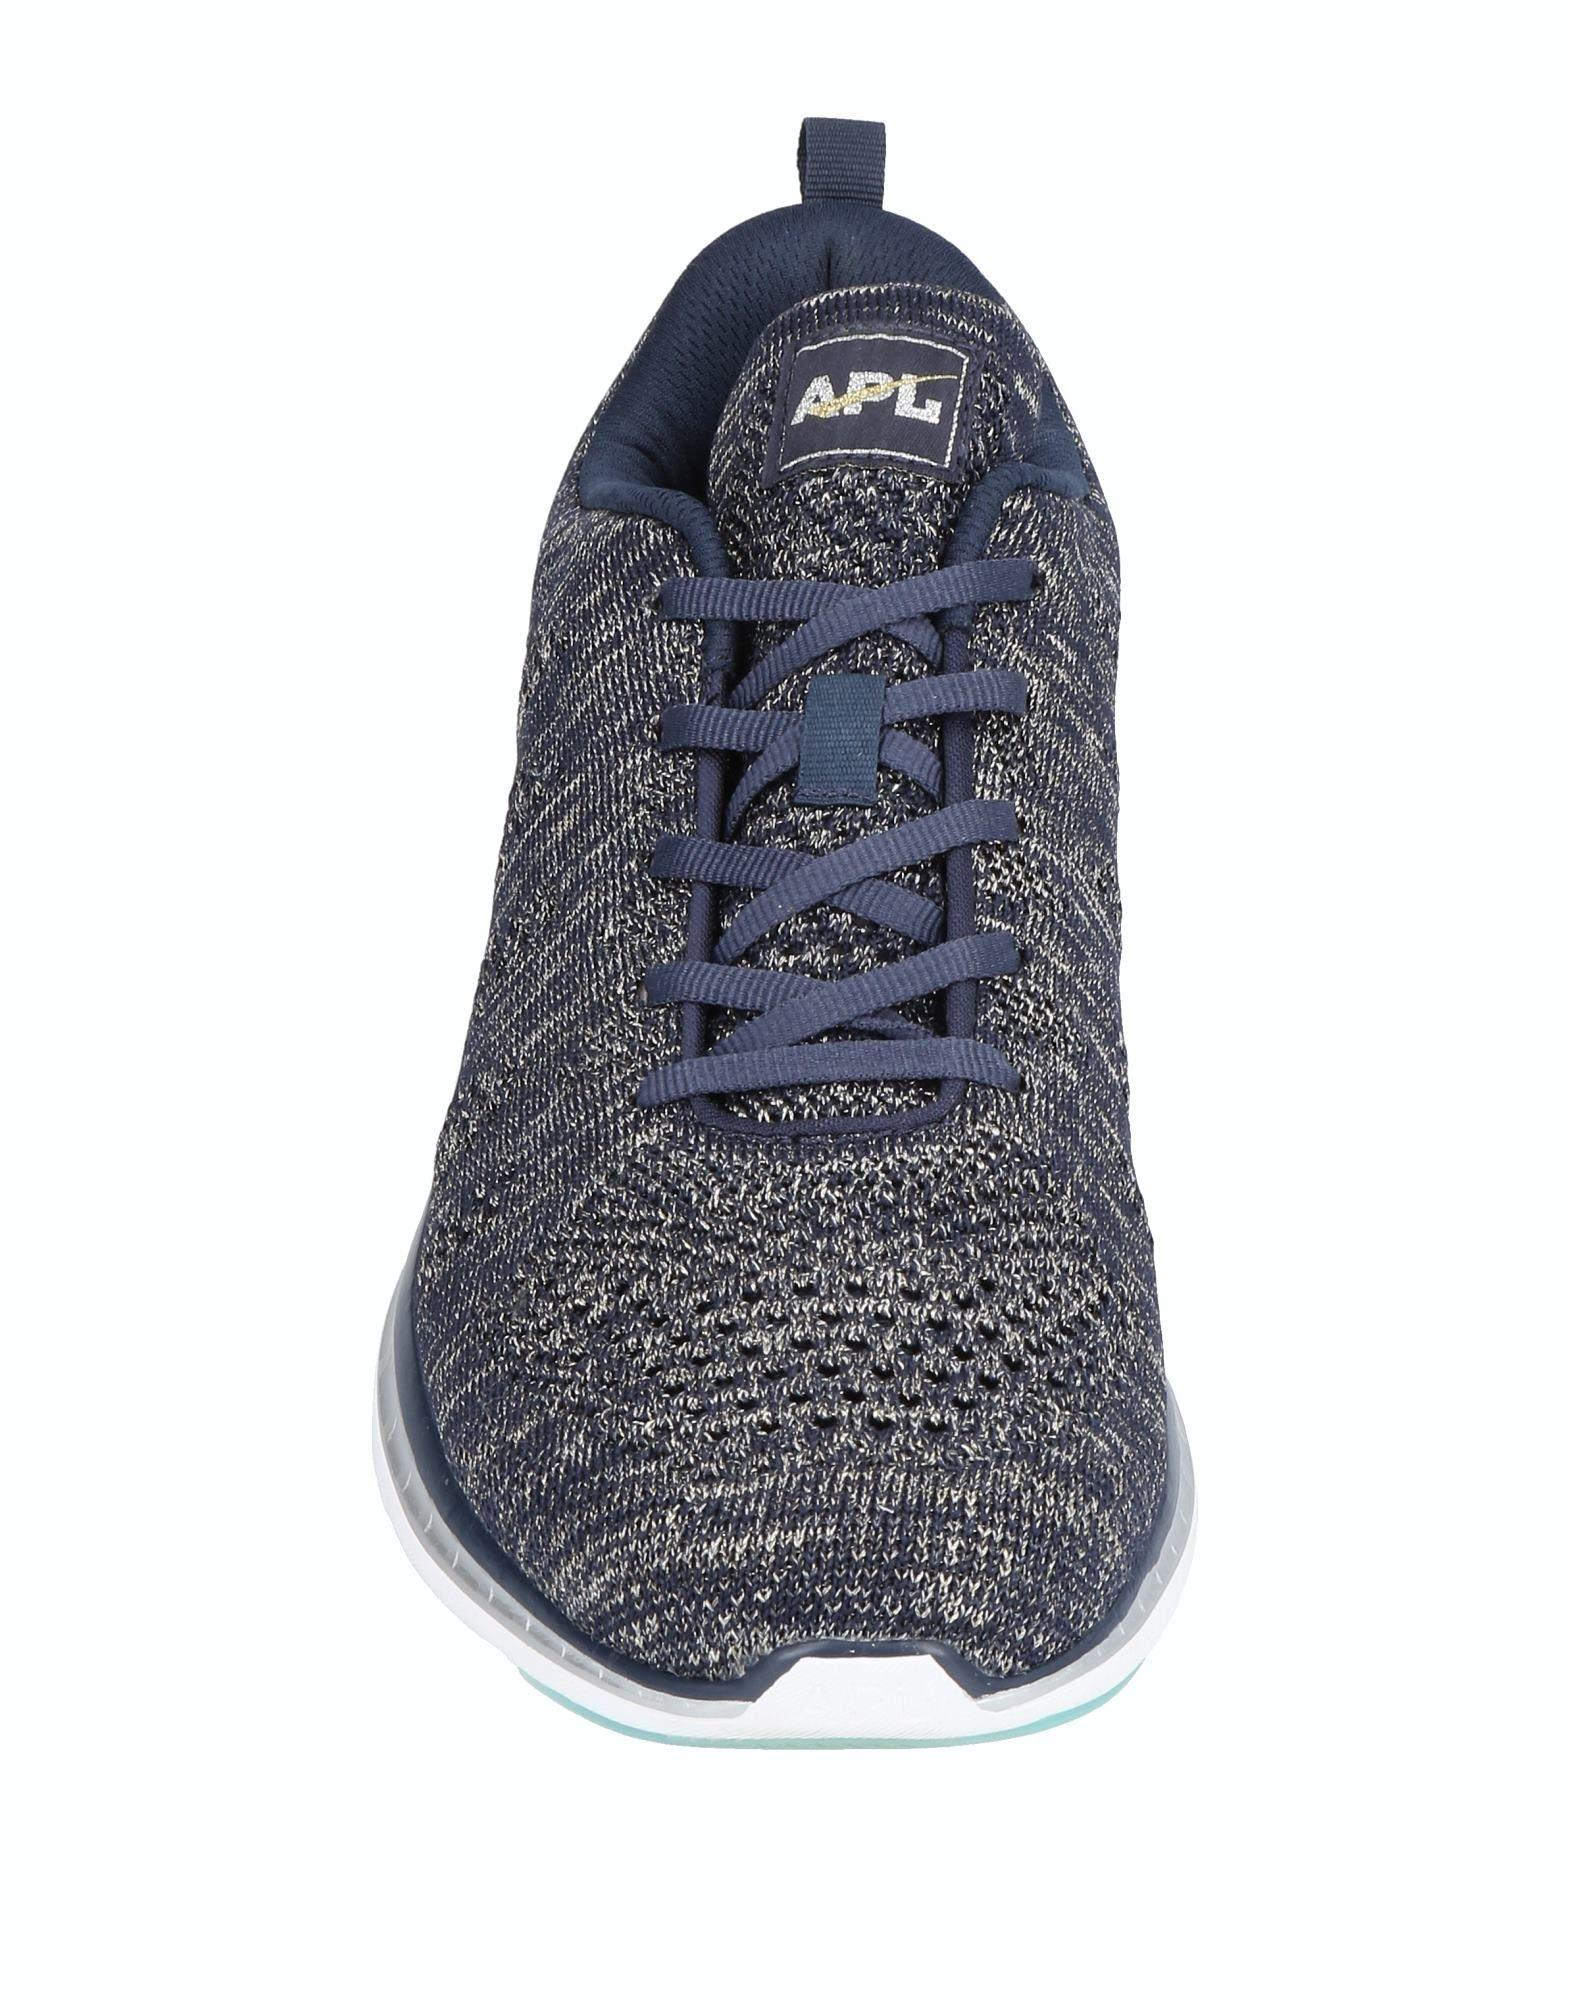 APL Shoes Rubber Low-tops & Sneakers in Blue for Men